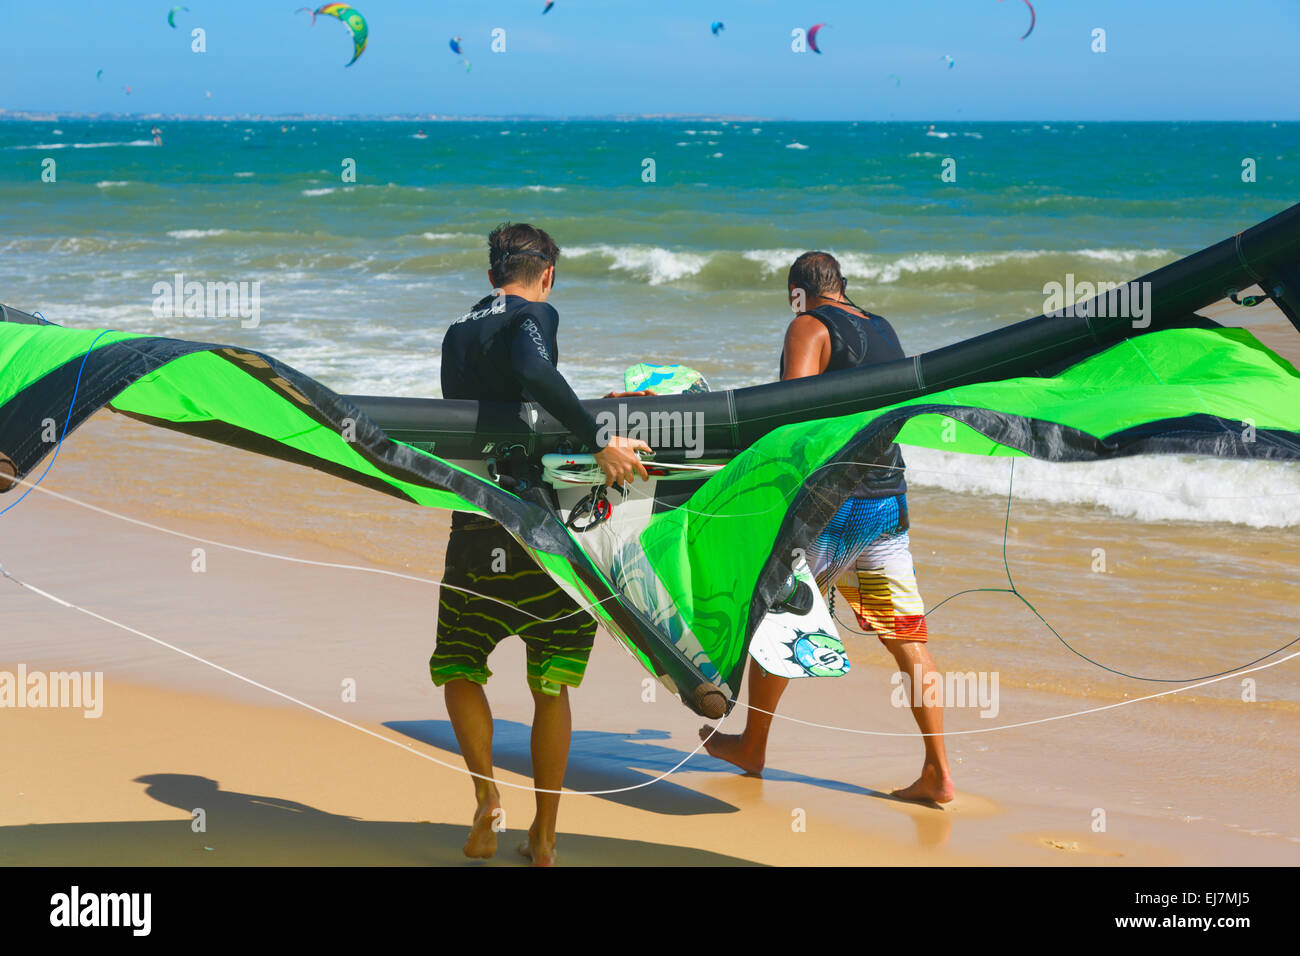 Kitesurfers on the beach - Stock Image